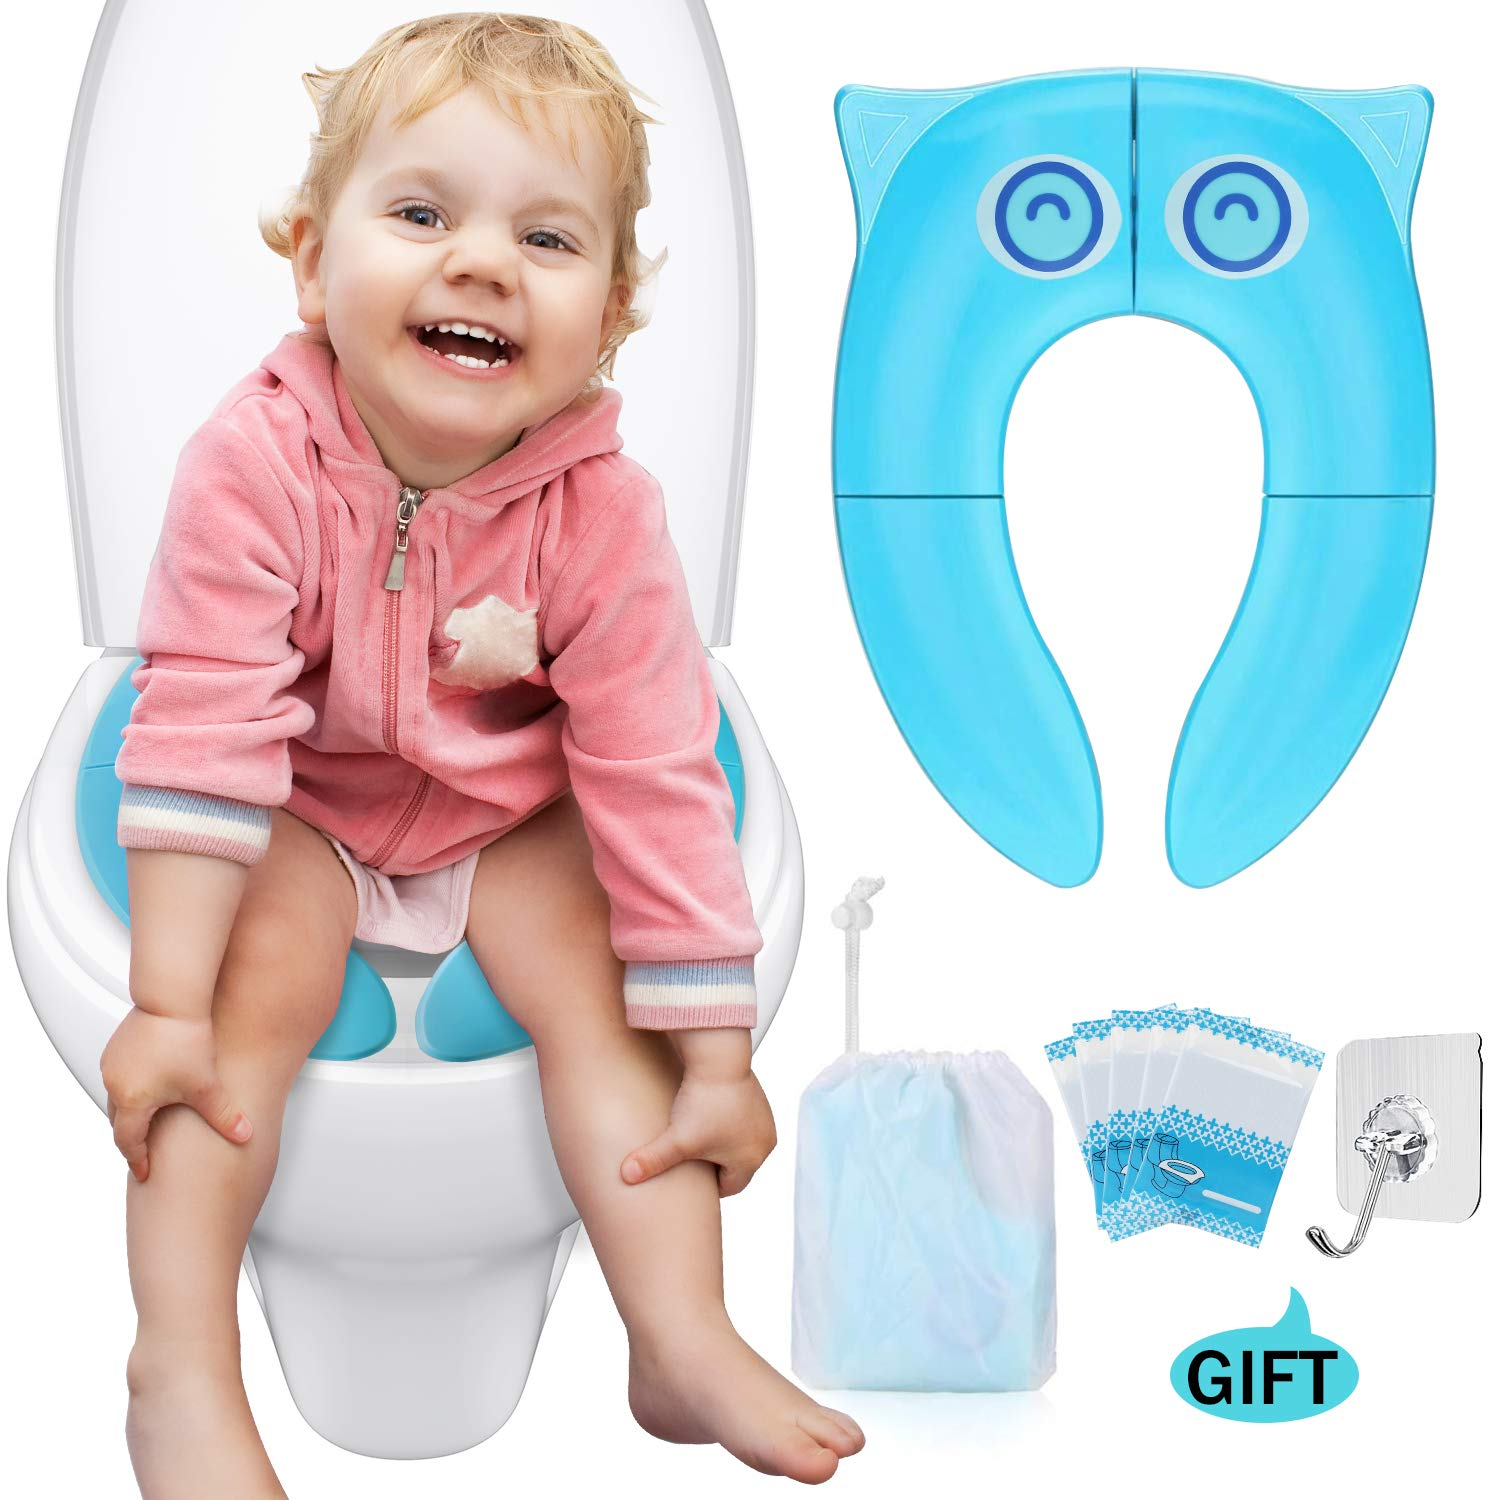 Torlam Folding Reusable Toilet Training Seat, Portable Travel Potty Seat Covers with Carry Bag, Upgrade Large Effectual Non Slip Silicone Pads for Babies, Kids and Toddlers (Blue)